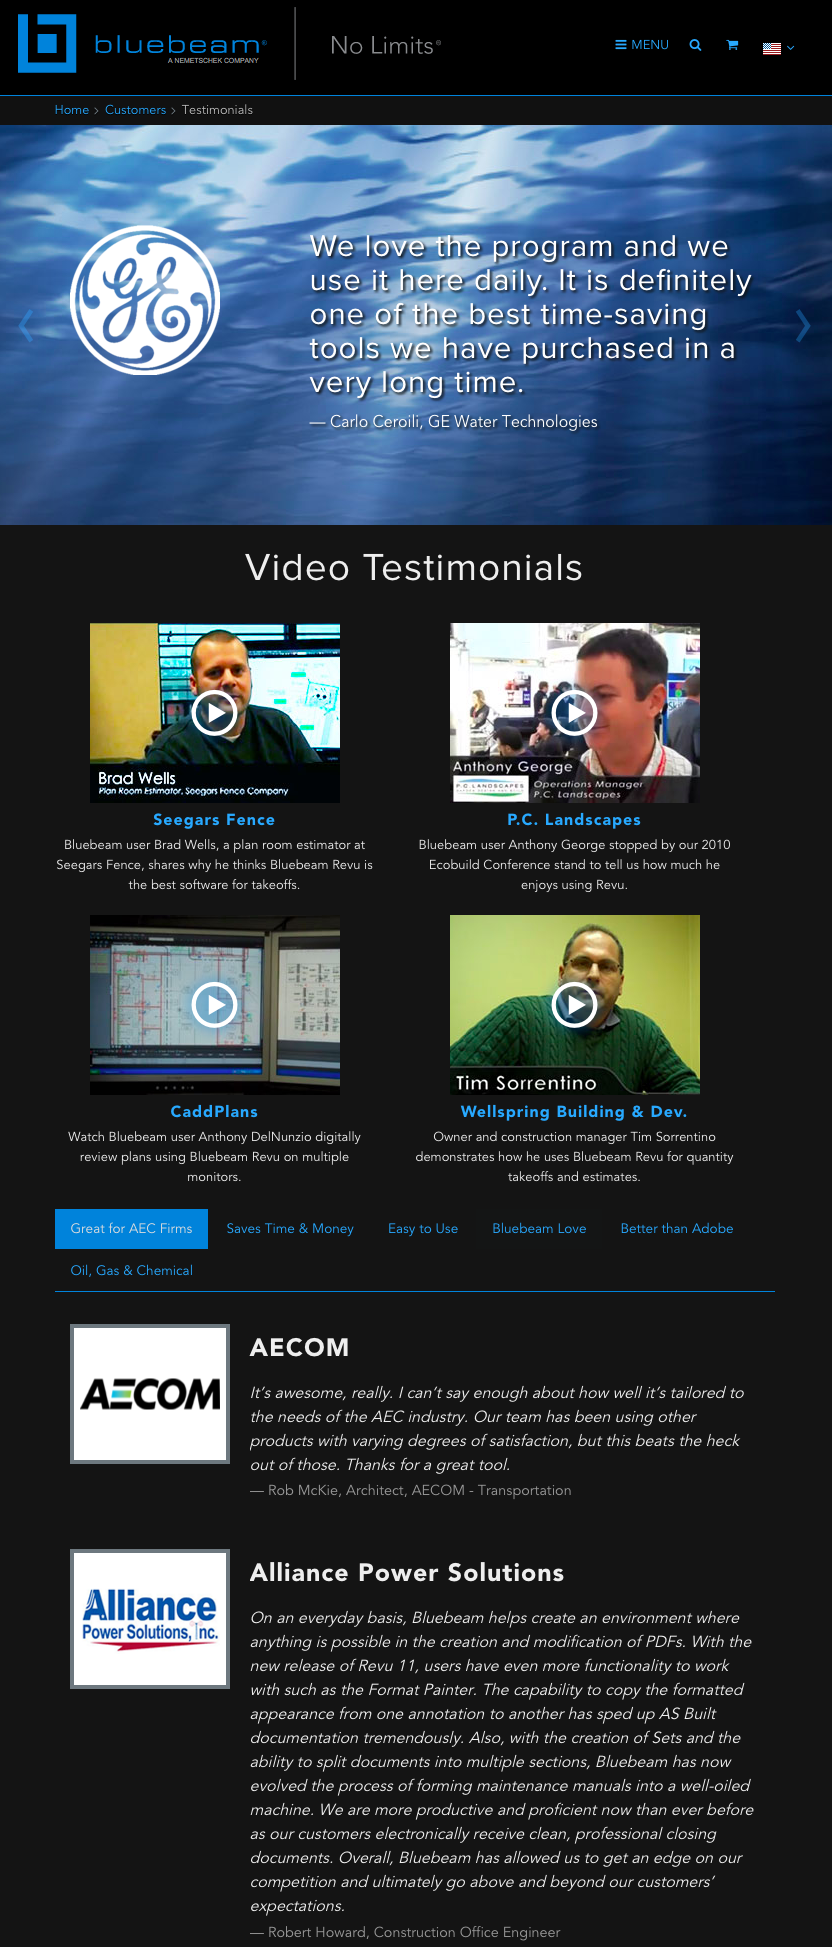 bluebeam-testimonials-page.png?noresize